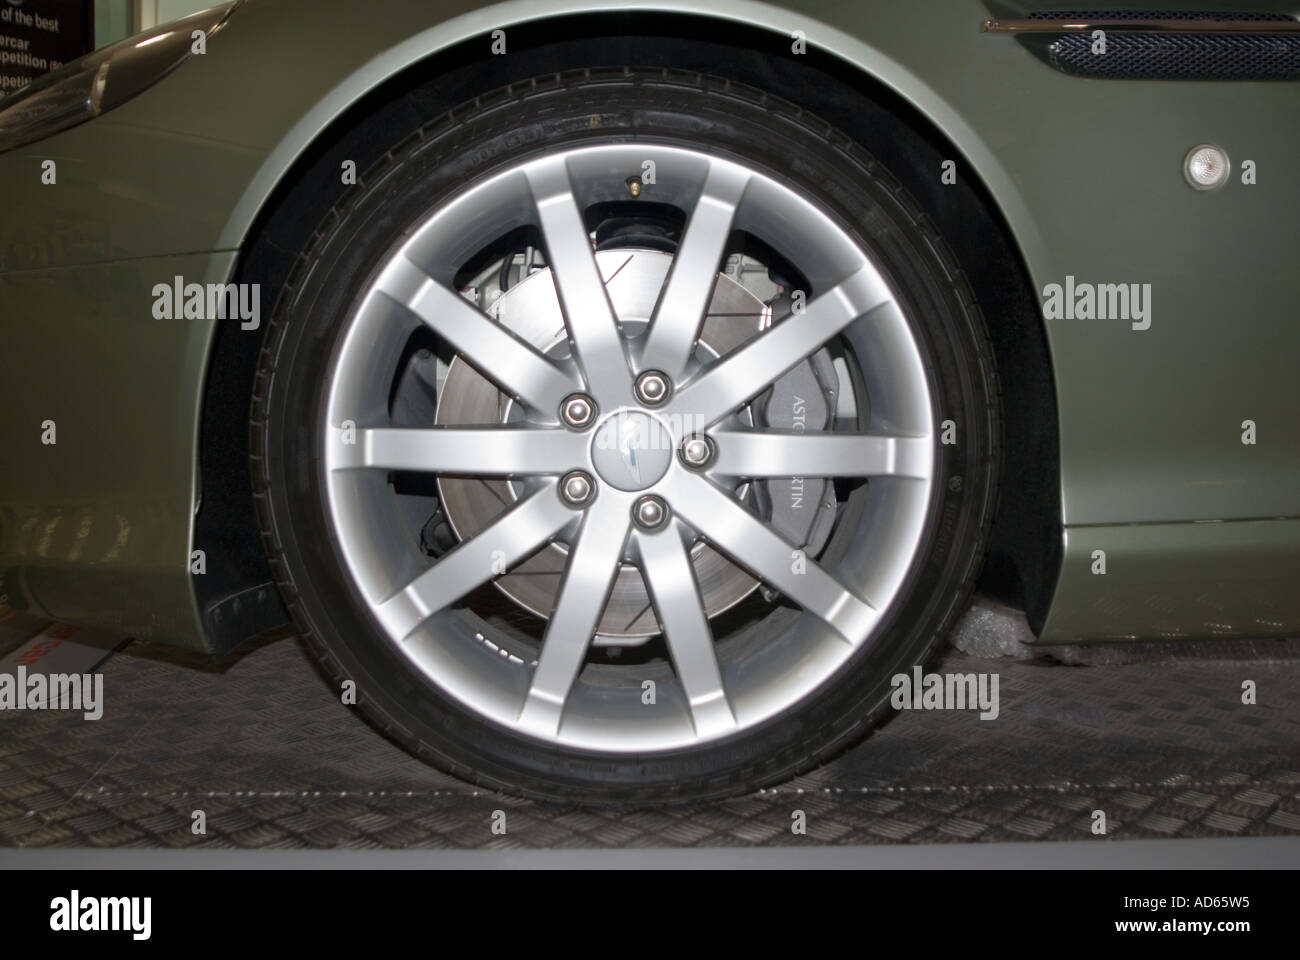 Close up shot of the wheel on an Astin Martin DB9 - Stock Image